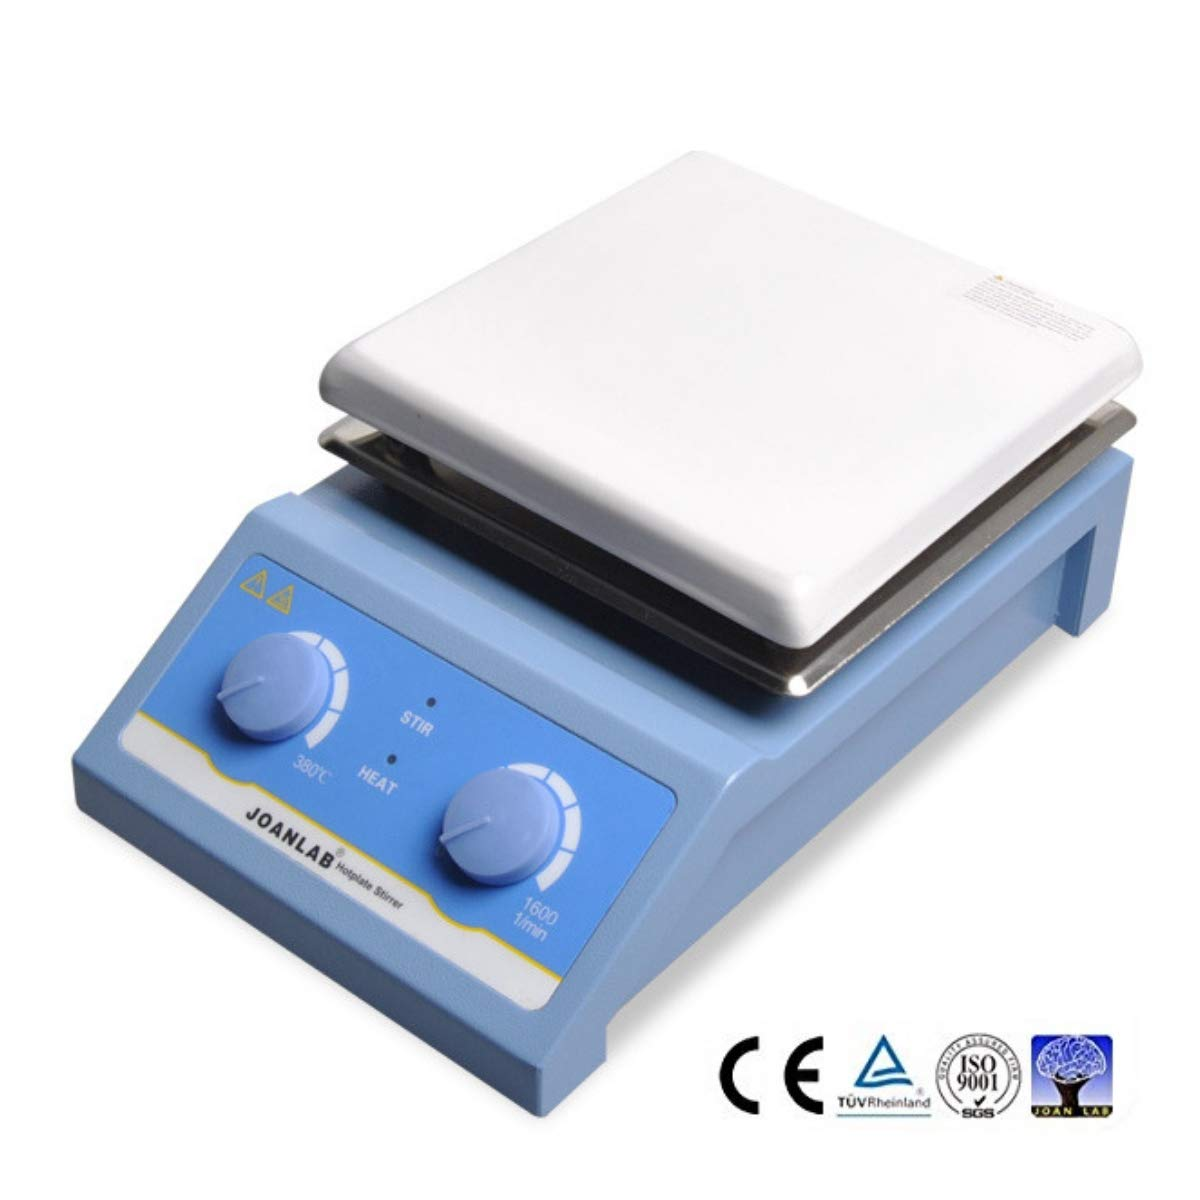 JoanLab SH-4 Magnetic Stirrer Hot Plate | 380°C Ceramic Hotplate | 5L Large Capacity | 0-1600 RPM Mixing Speed | for Laboratory Heating and Stirring | 1 Year Warranty